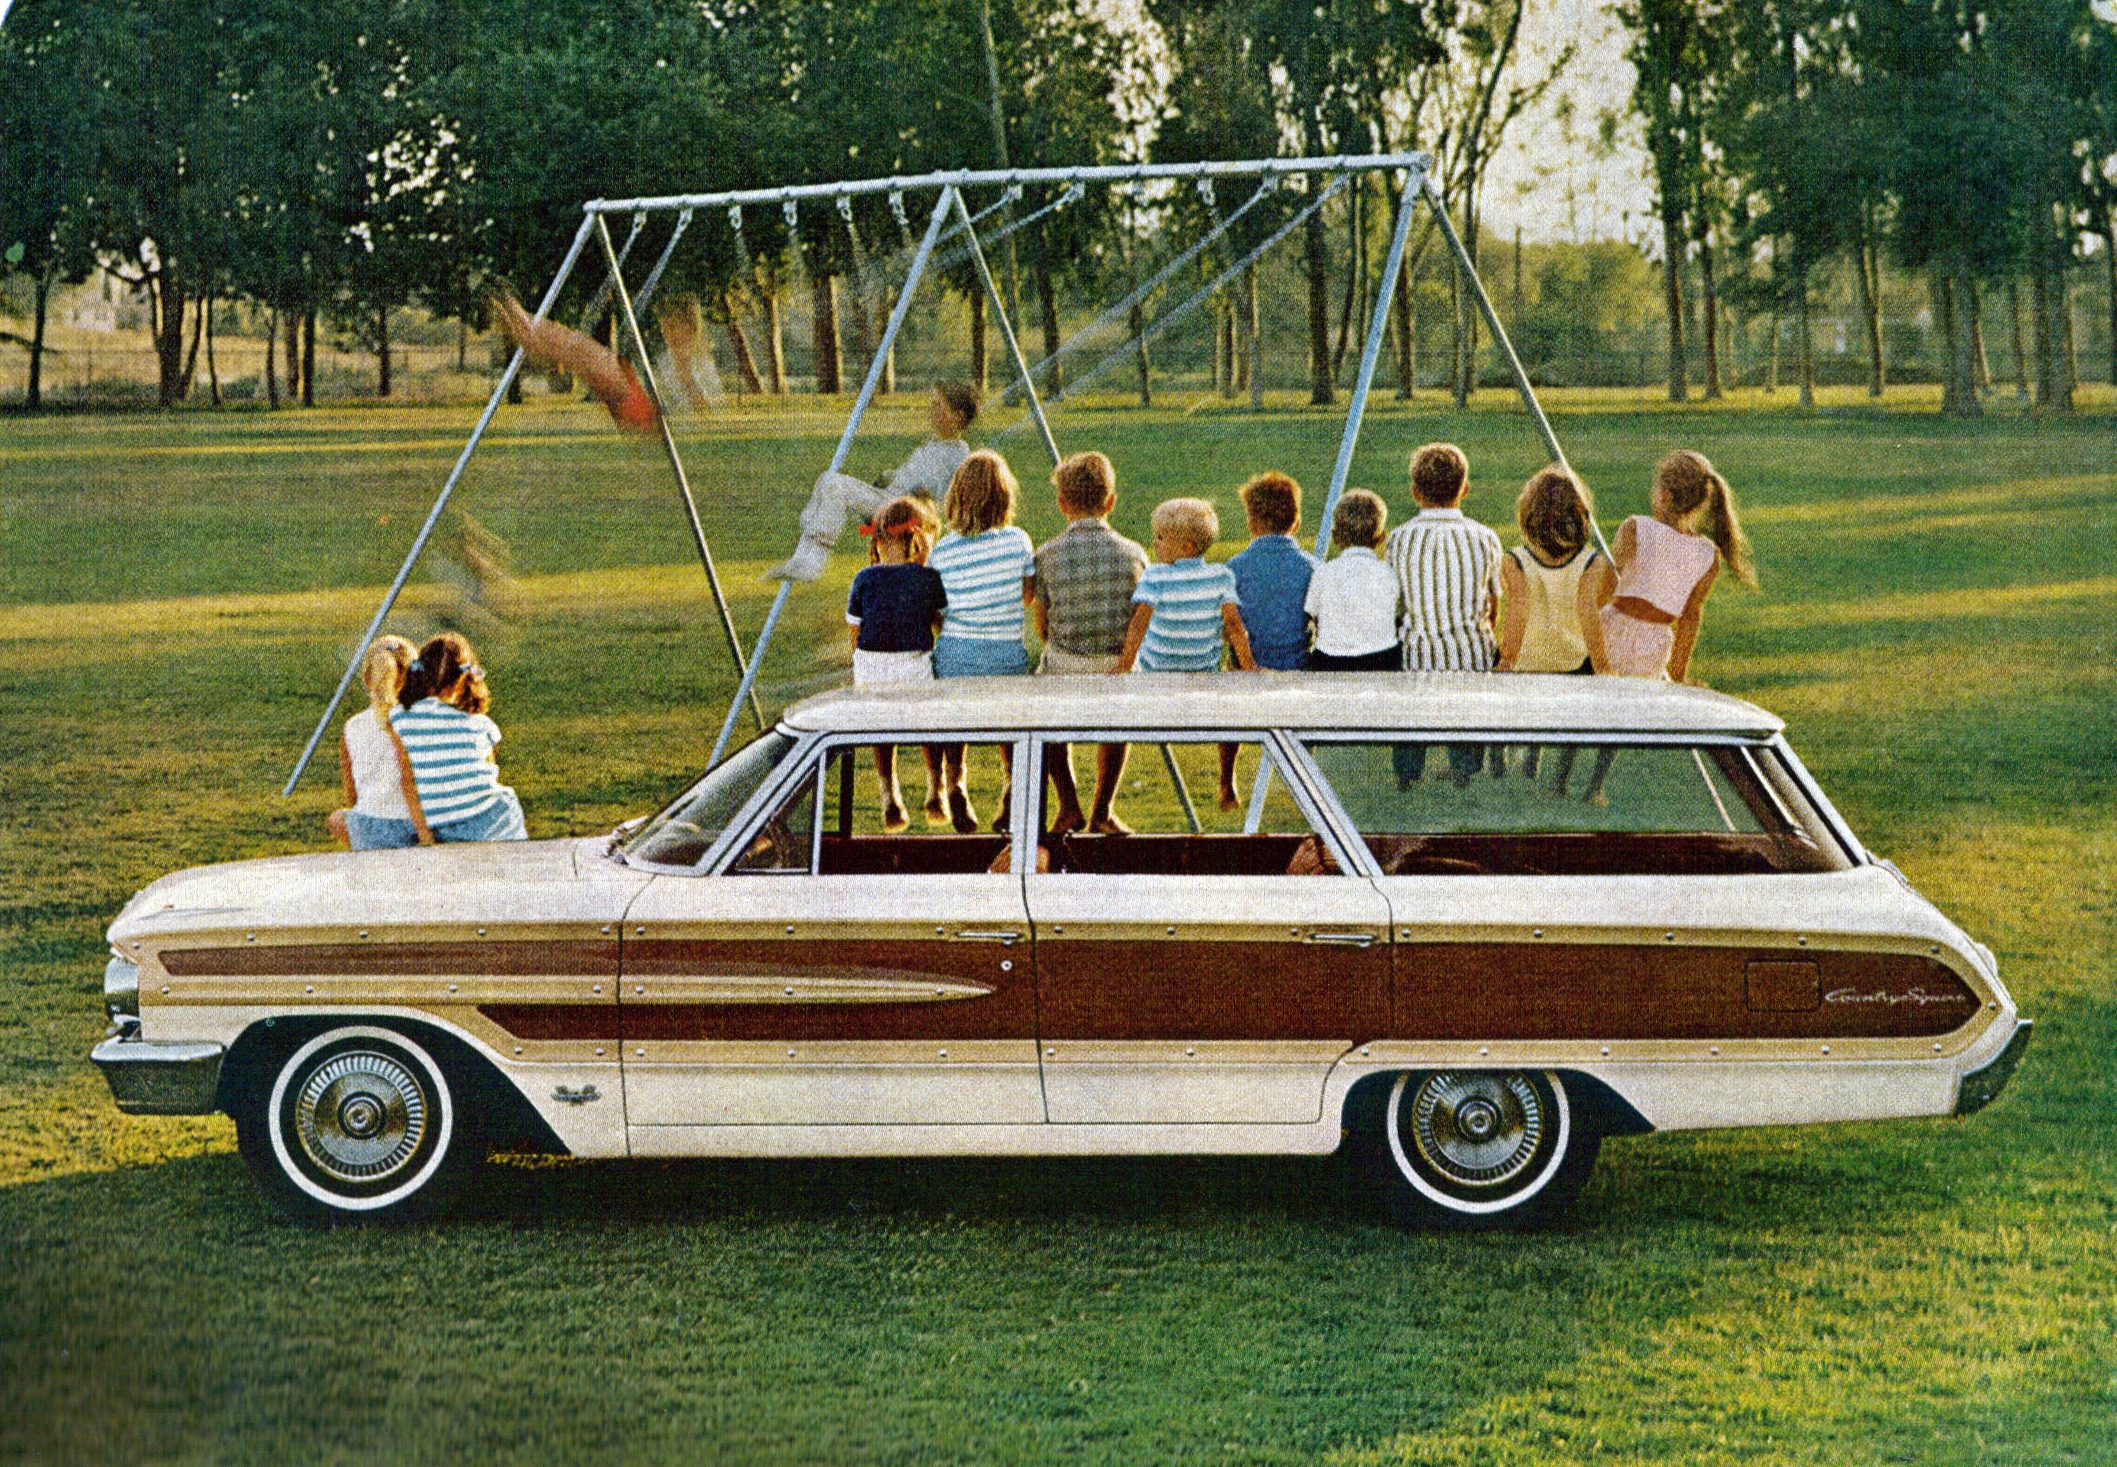 1964 Ford Country Squire Station Wagon | Flickr - Photo Sharing!